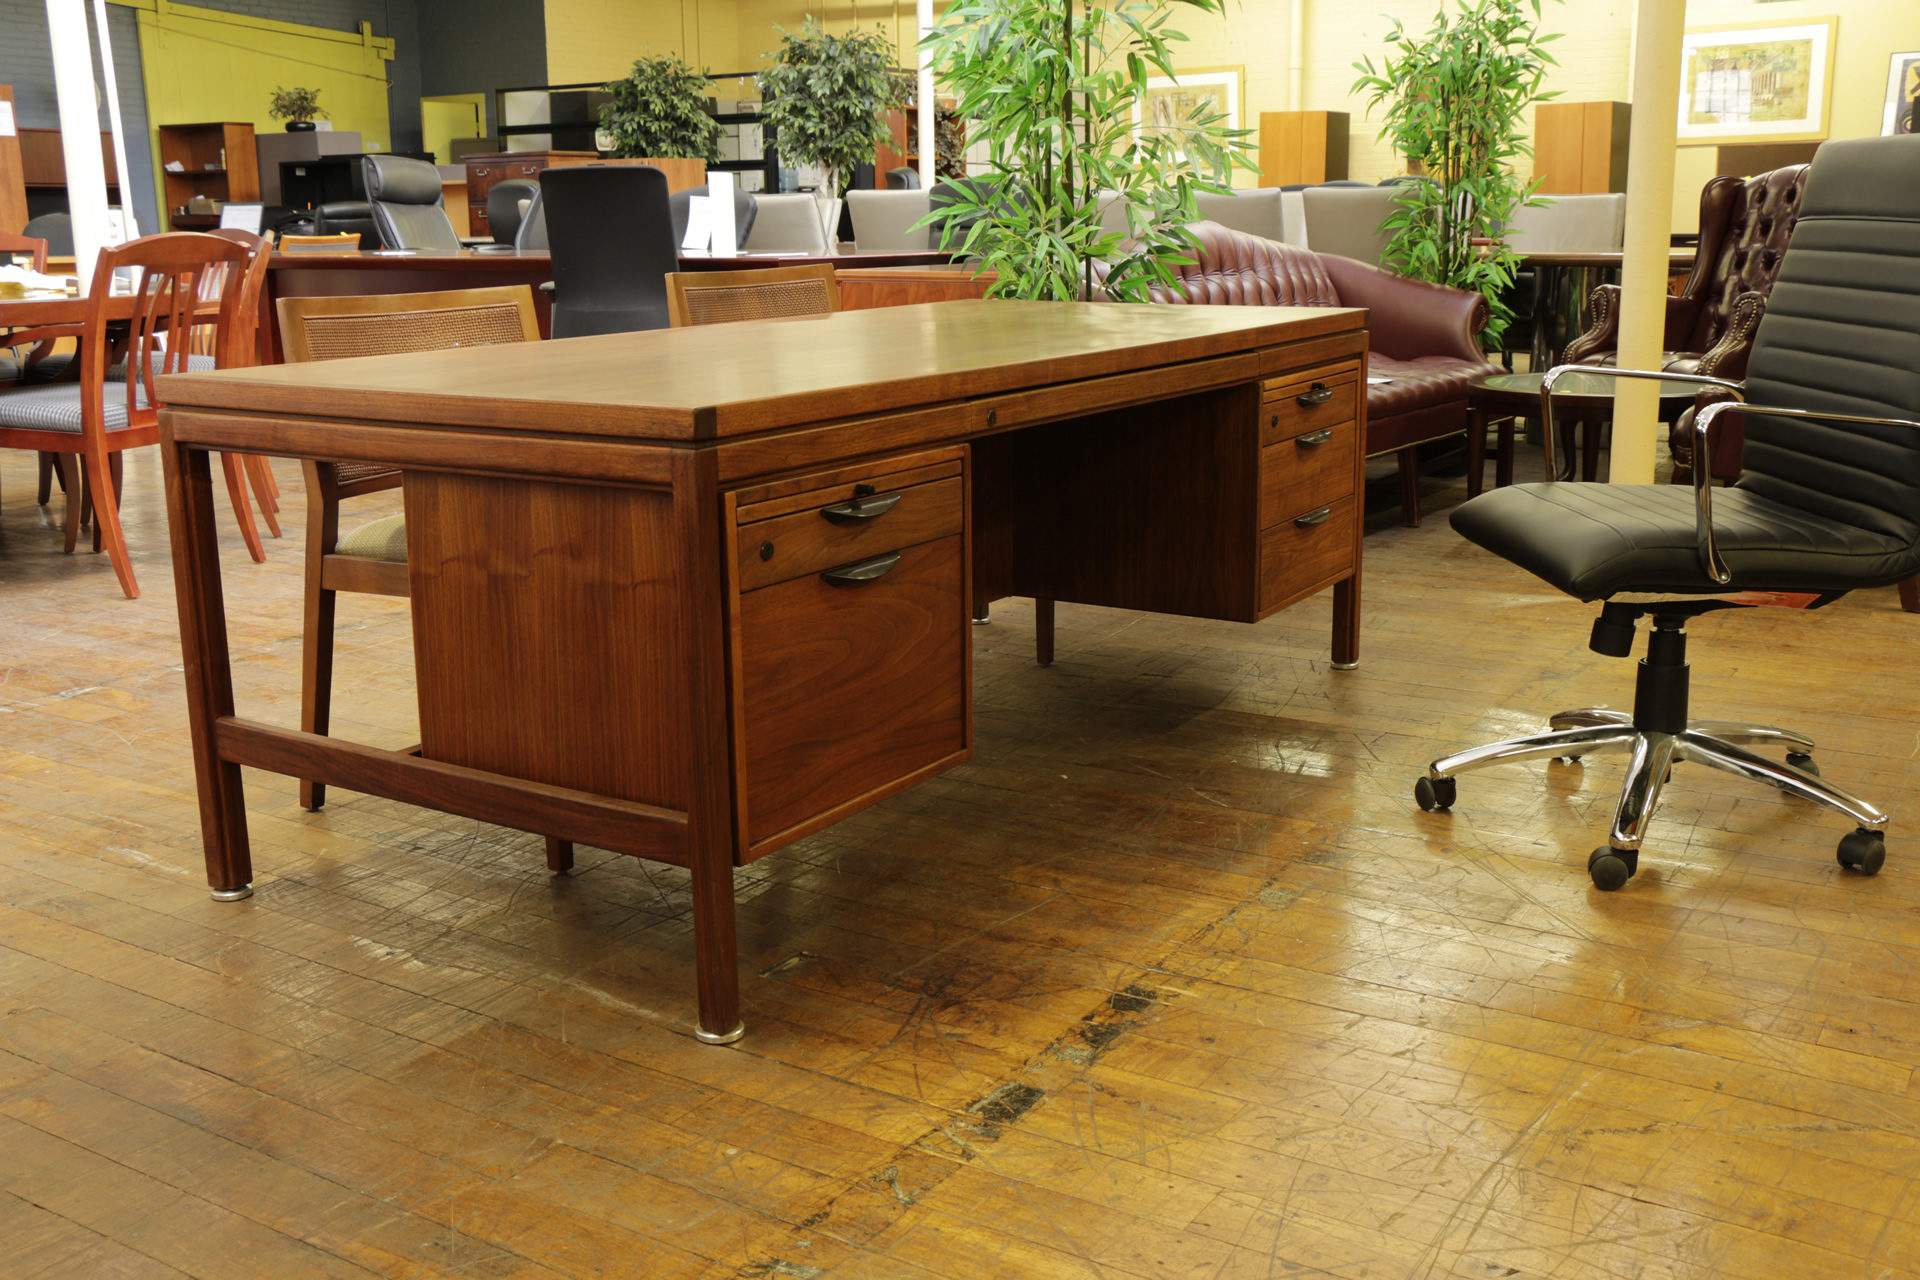 peartreeofficefurniture_peartreeofficefurniture_mg_1968.jpg